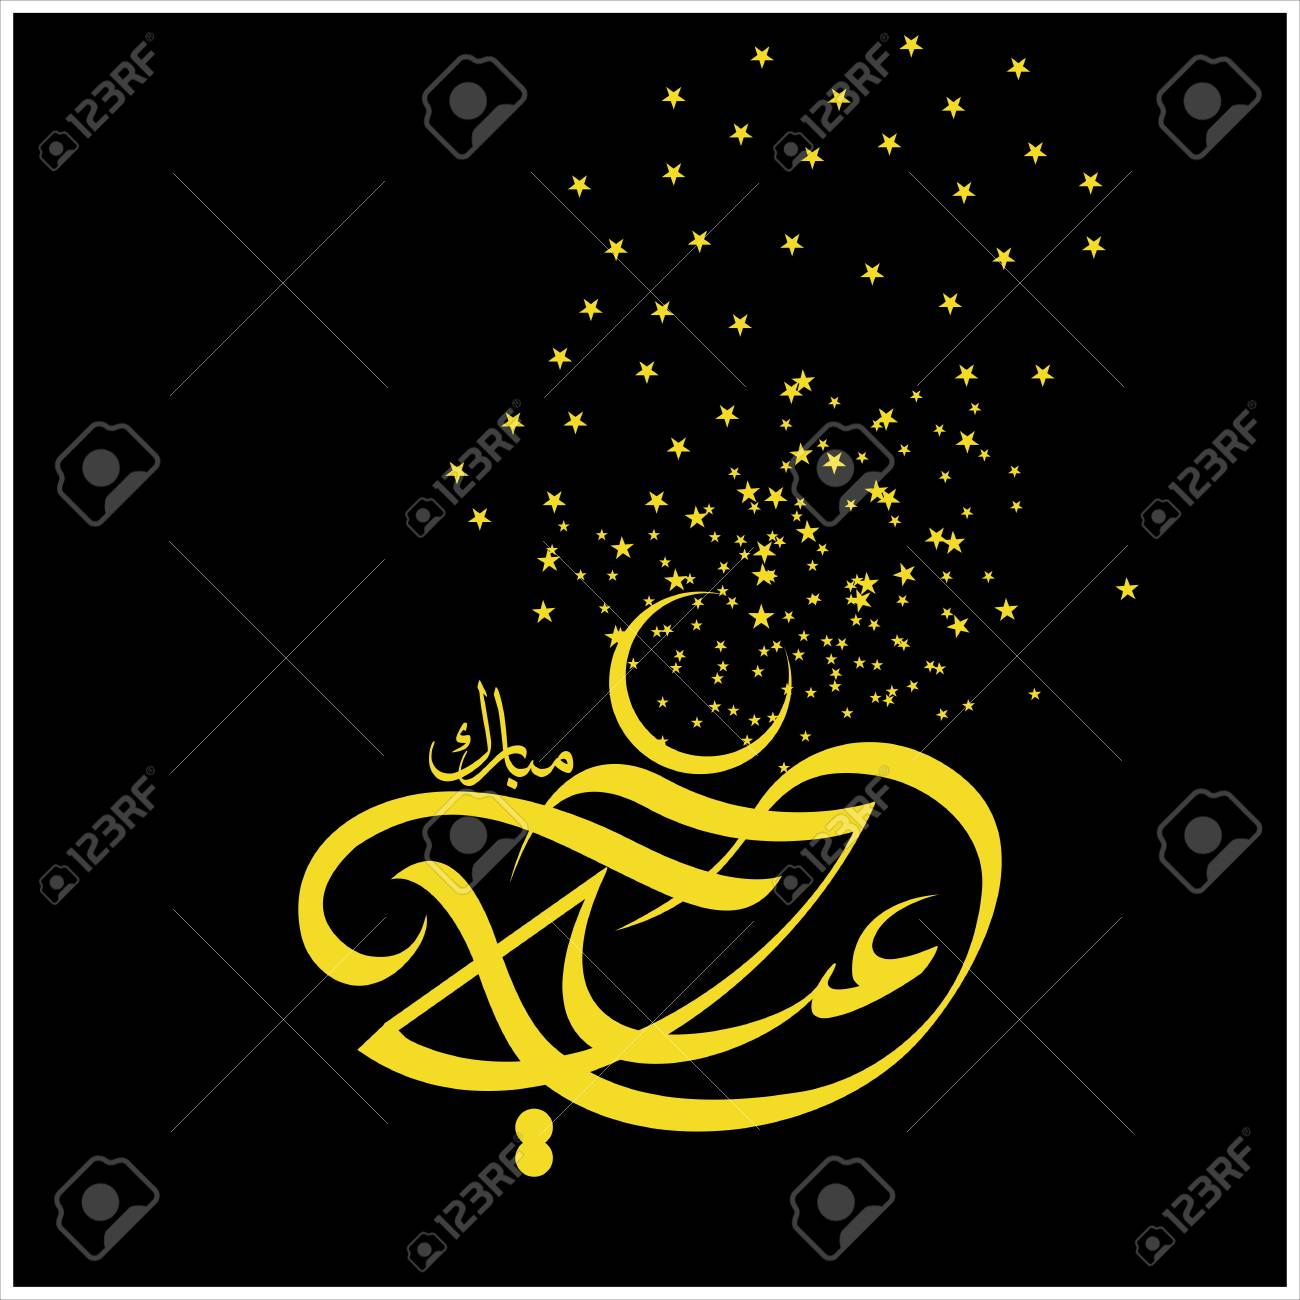 Happy eid mubarak arabic gold text calligraphy for greeting card happy eid mubarak arabic gold text calligraphy for greeting card muslims celebrating festival stock vector m4hsunfo